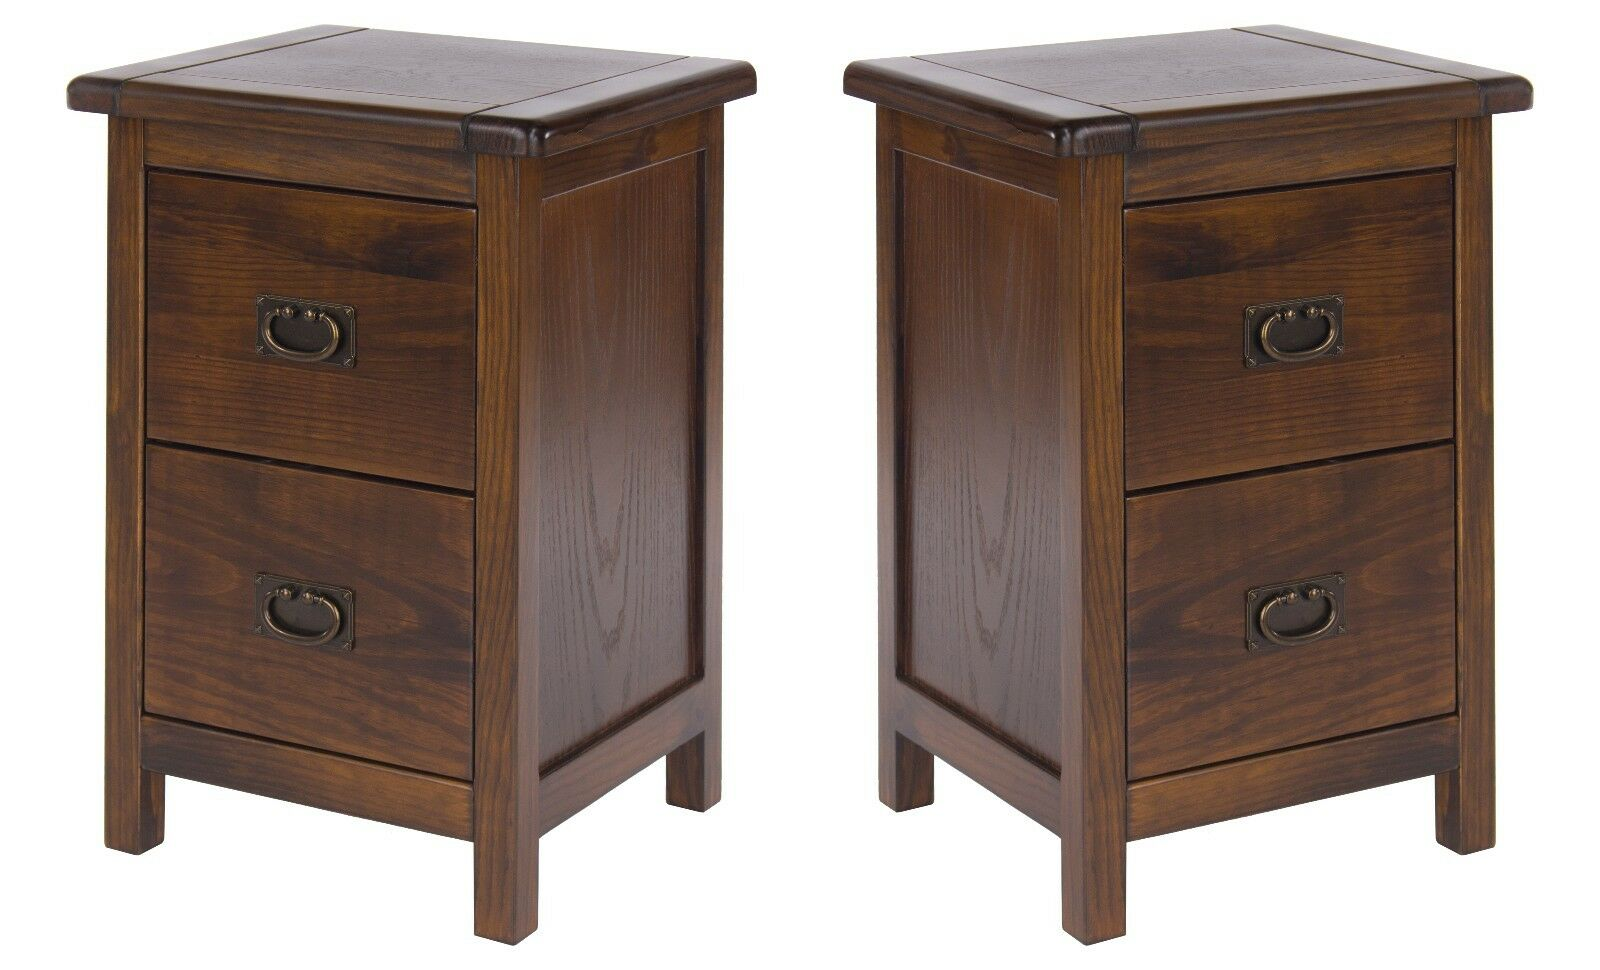 Pair of bedside cabinets tables dark wood baltia solid for Dark wood furniture